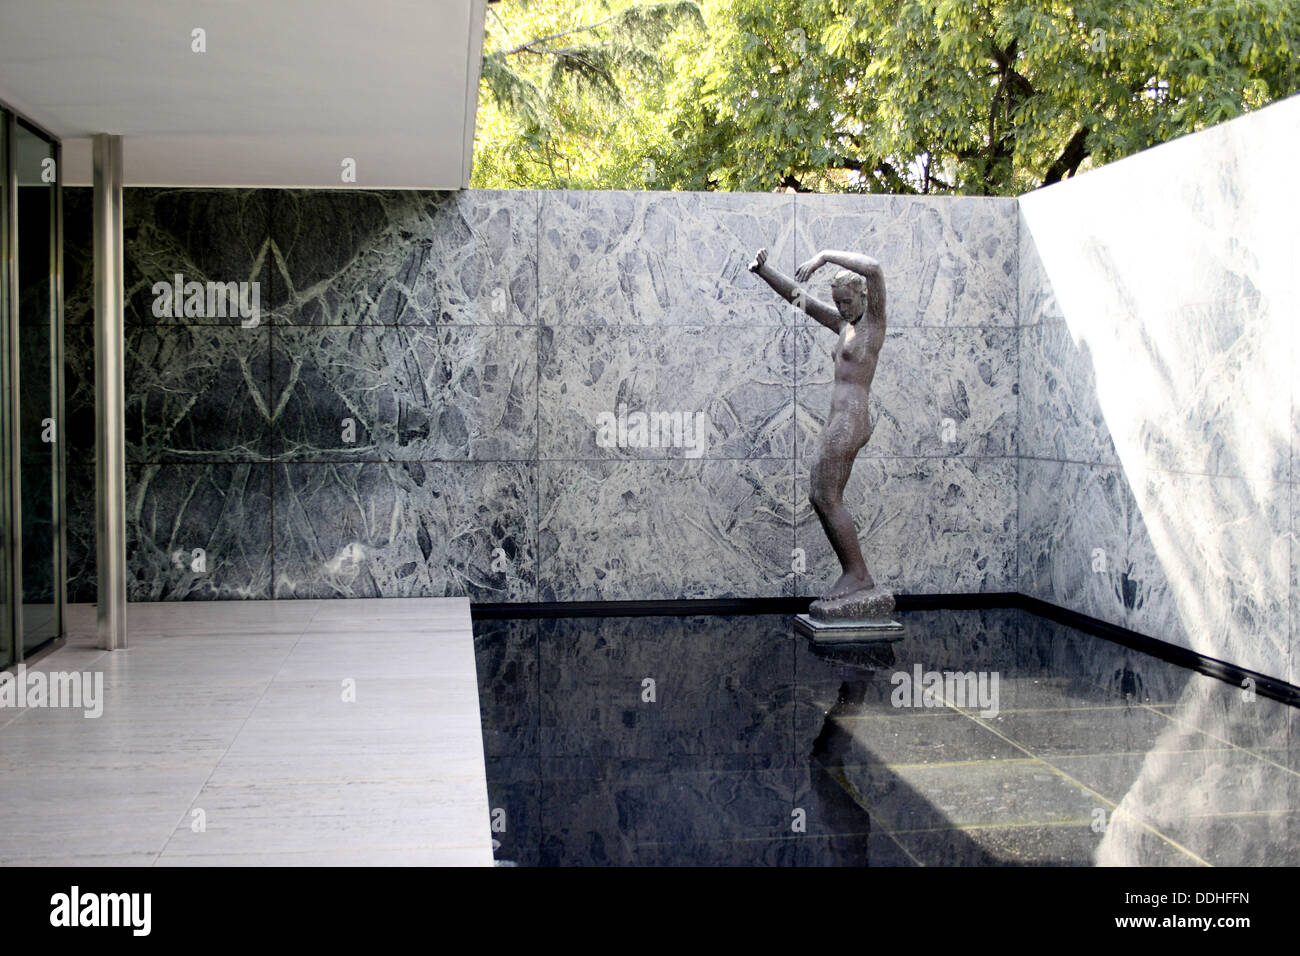 georg kolbe sculpture mies van der rohe pavilion barcelona spain stock photo 60007017 alamy. Black Bedroom Furniture Sets. Home Design Ideas